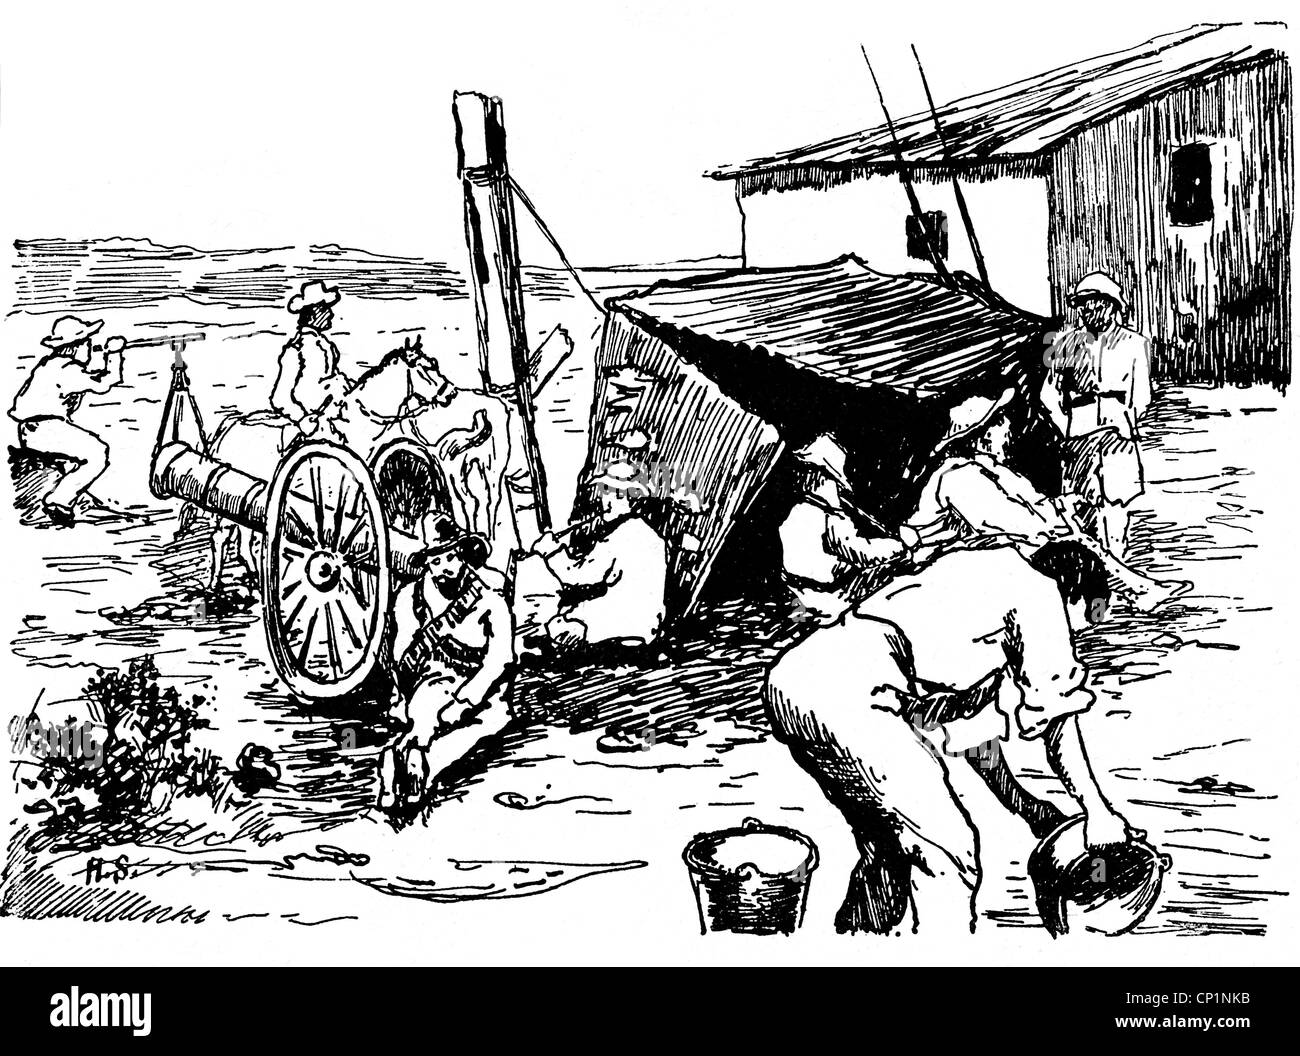 events, Second Boer War 1899 - 1902, boers, in the camp of general Piet Cronje, drawing, 1903, South Africa, Transvaal, - Stock Image